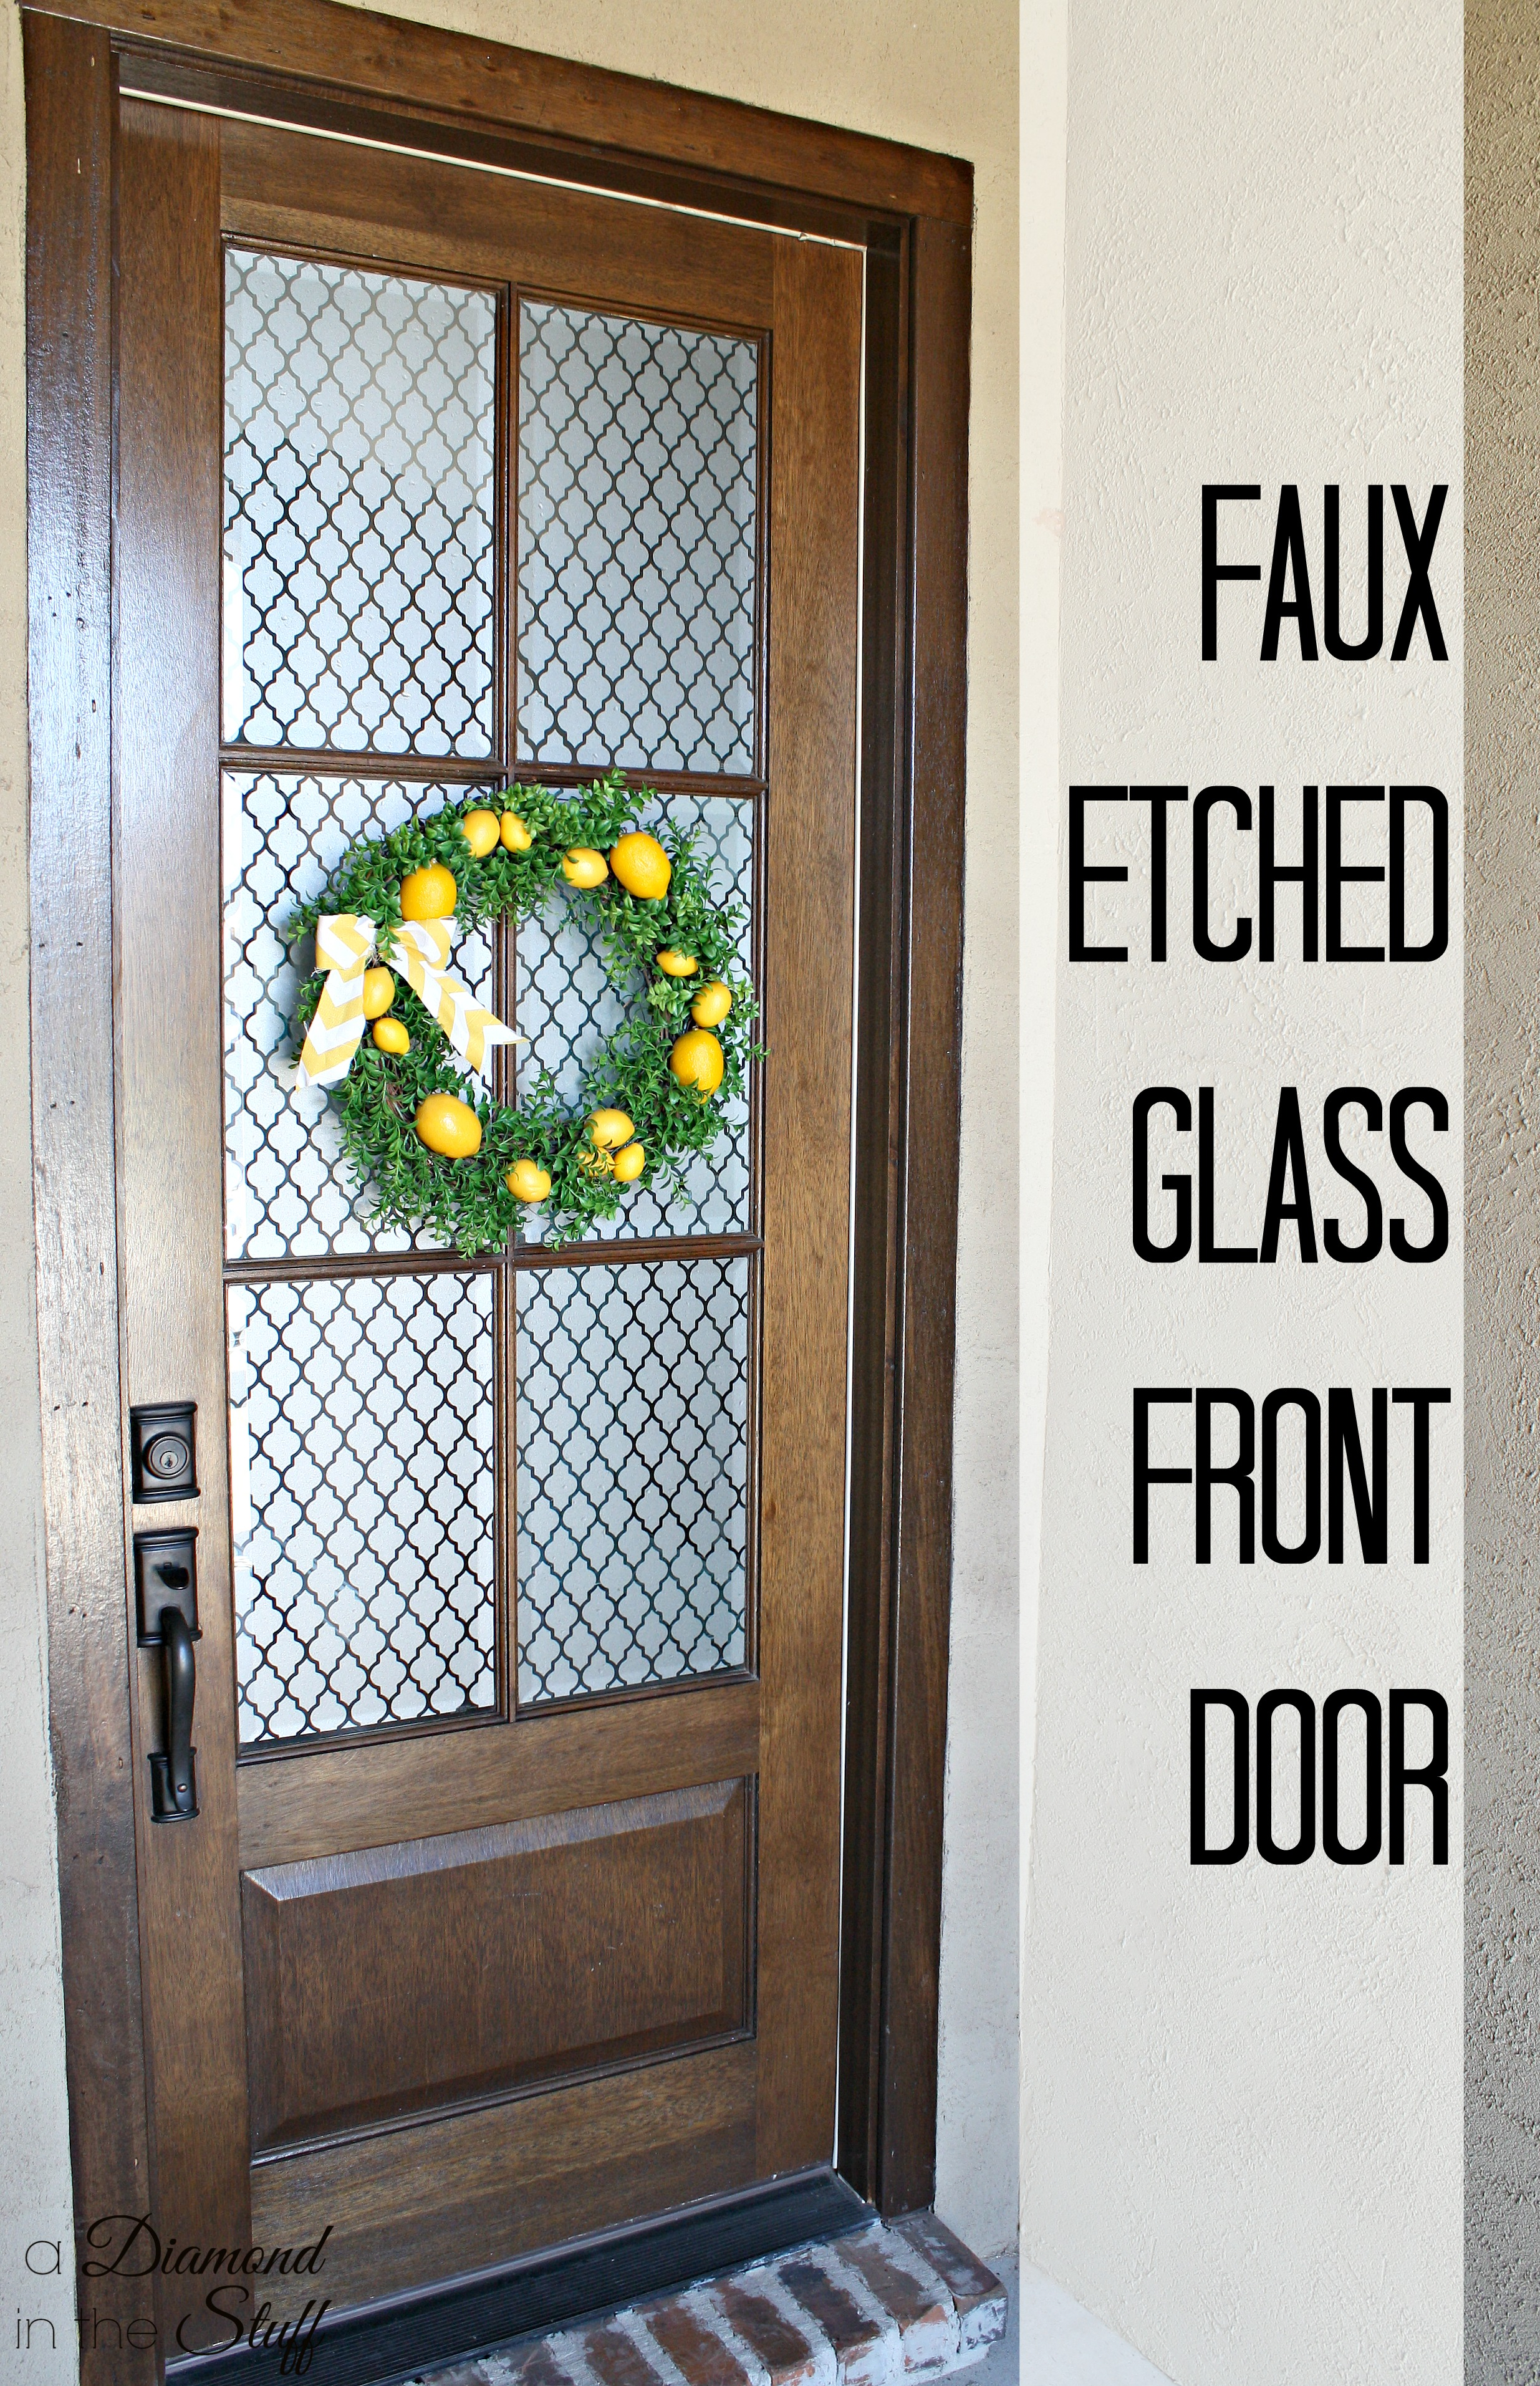 Faux etched glass front door for Glass front doors